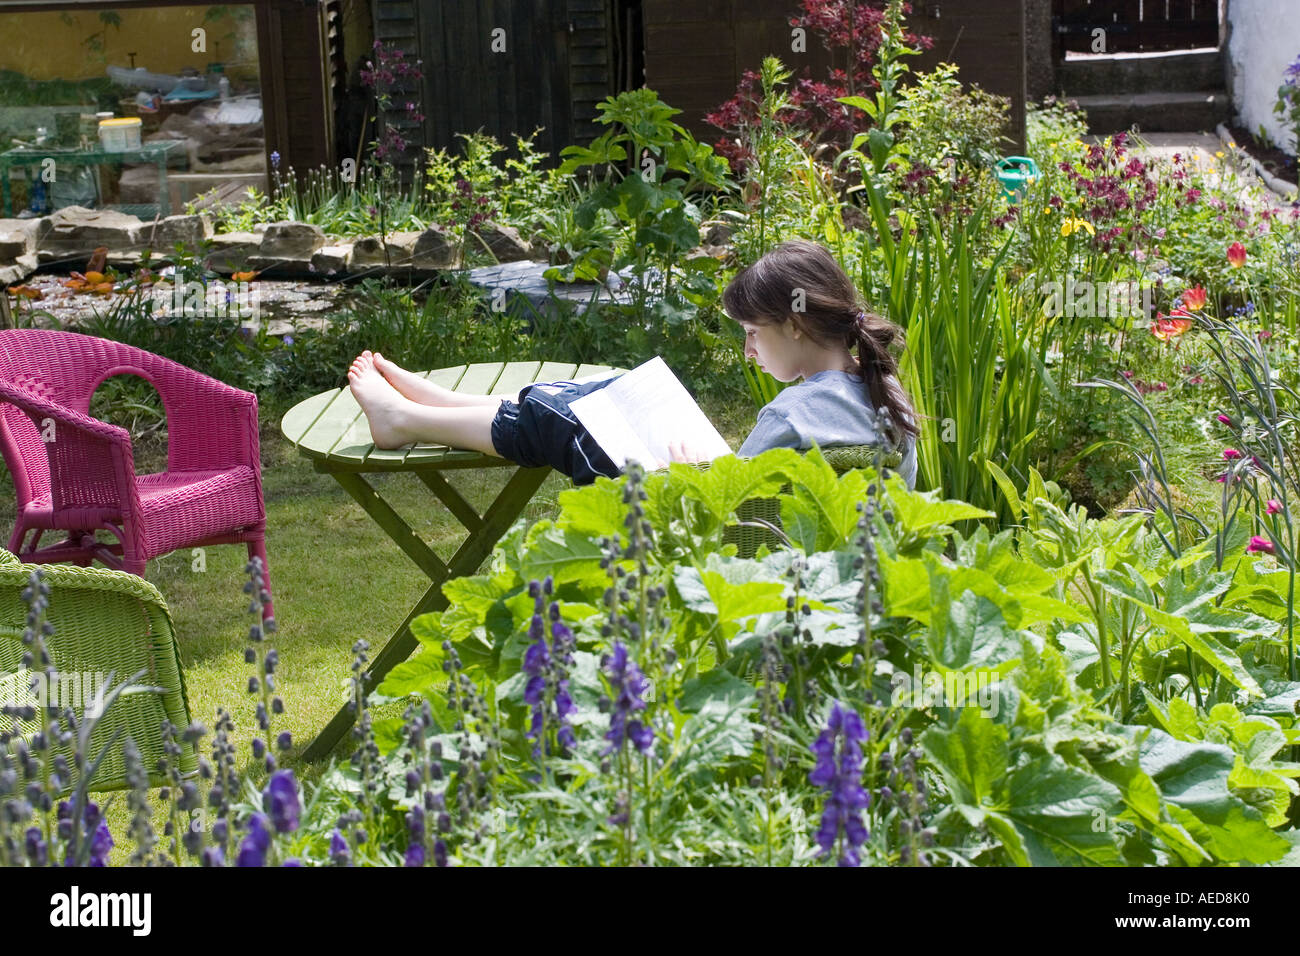 Teenage Girl Studying For Exams In Garden People Lifestyle Wales